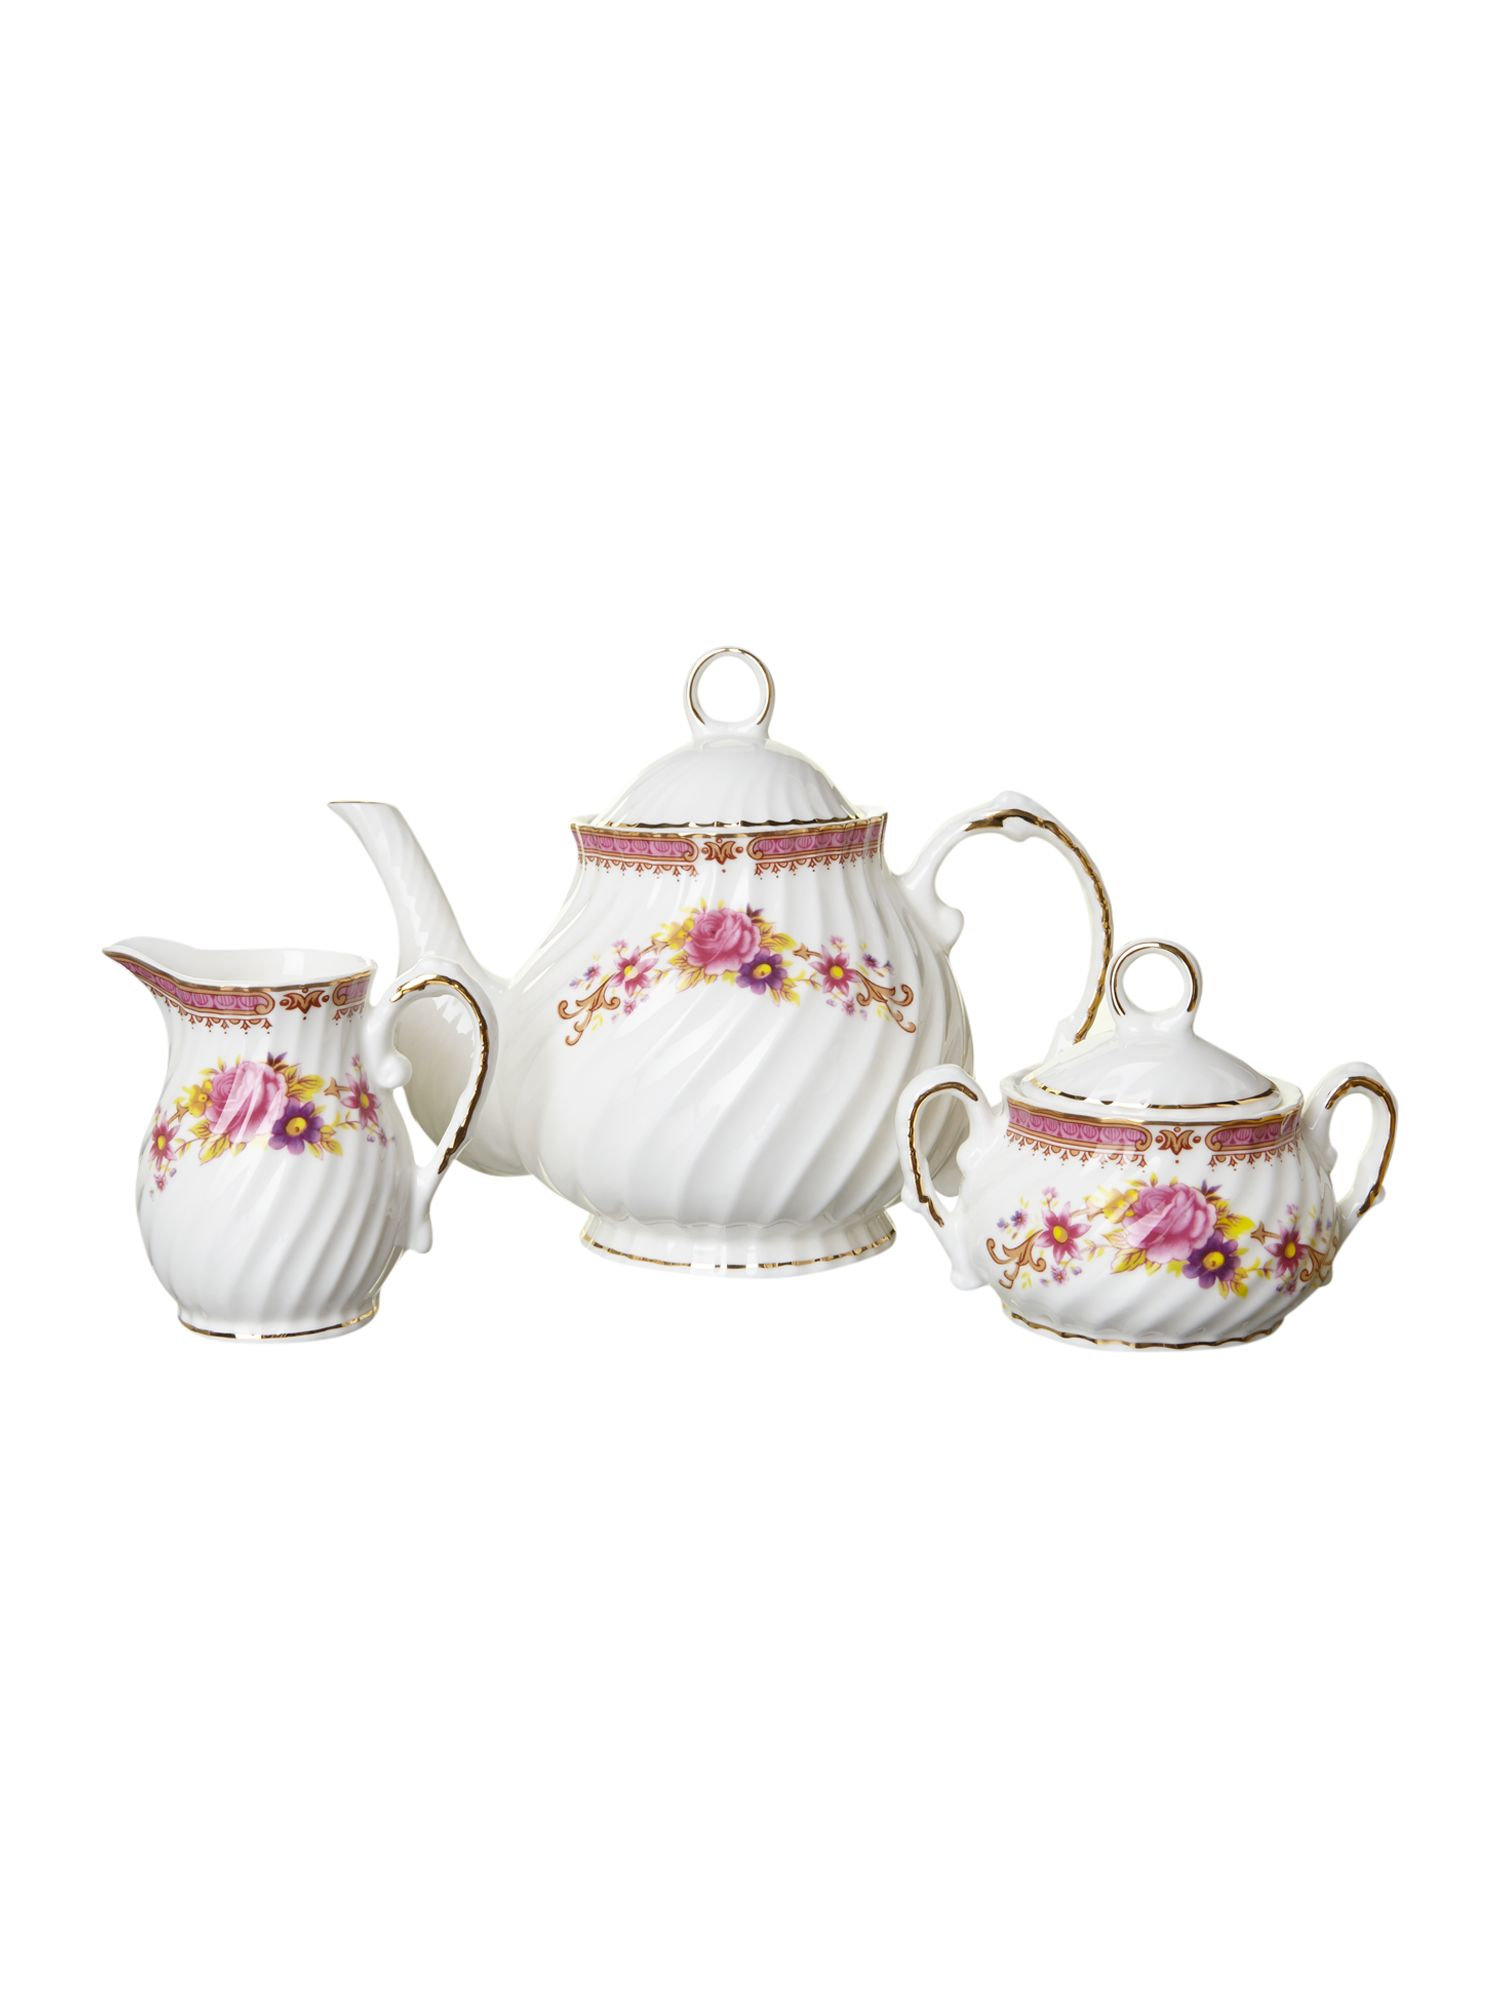 Kensington Rose tea service